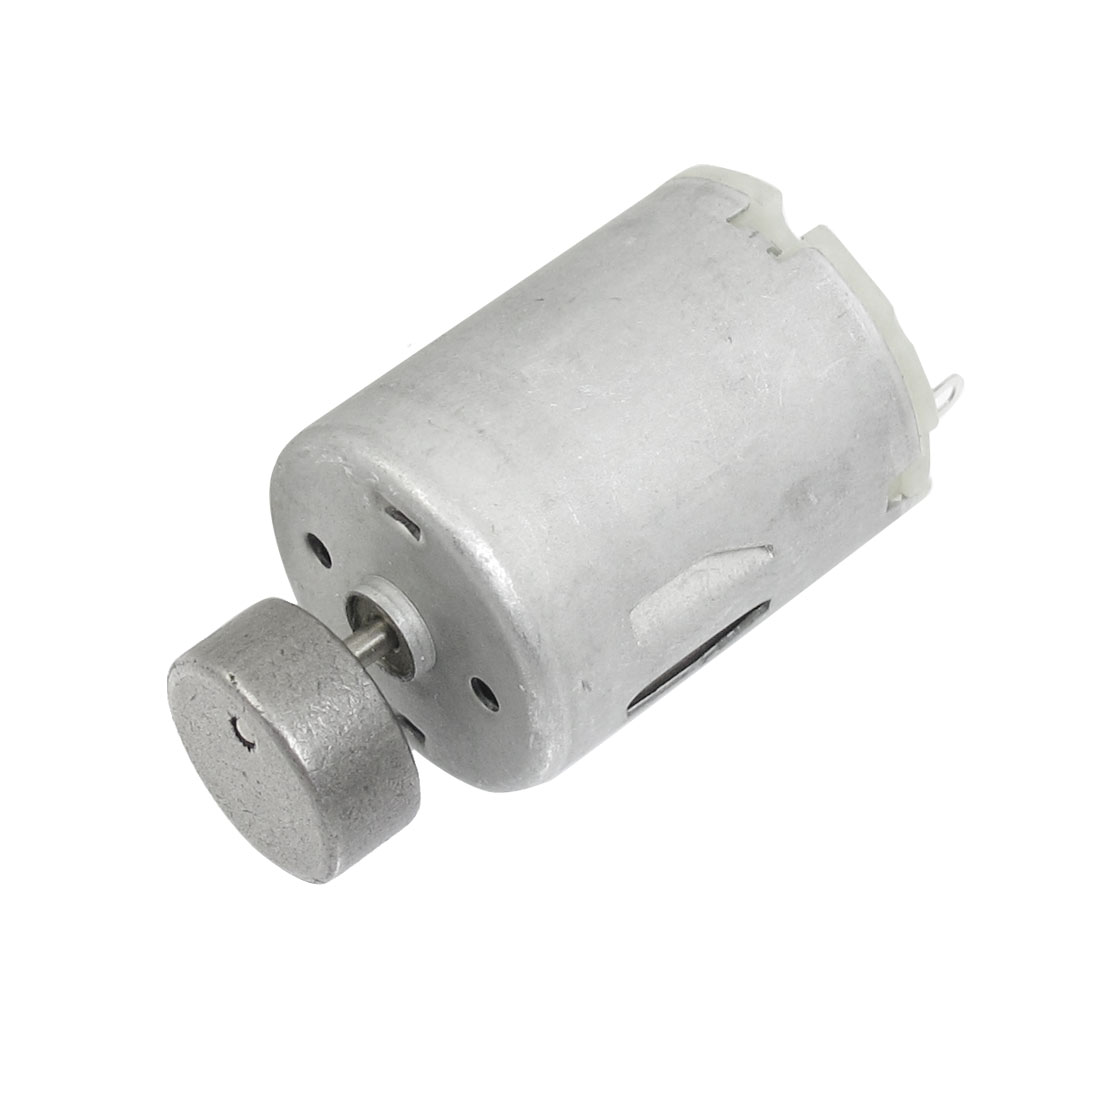 6200RPM DC 12V 24mm Dia Connecter Electric Micro Motor